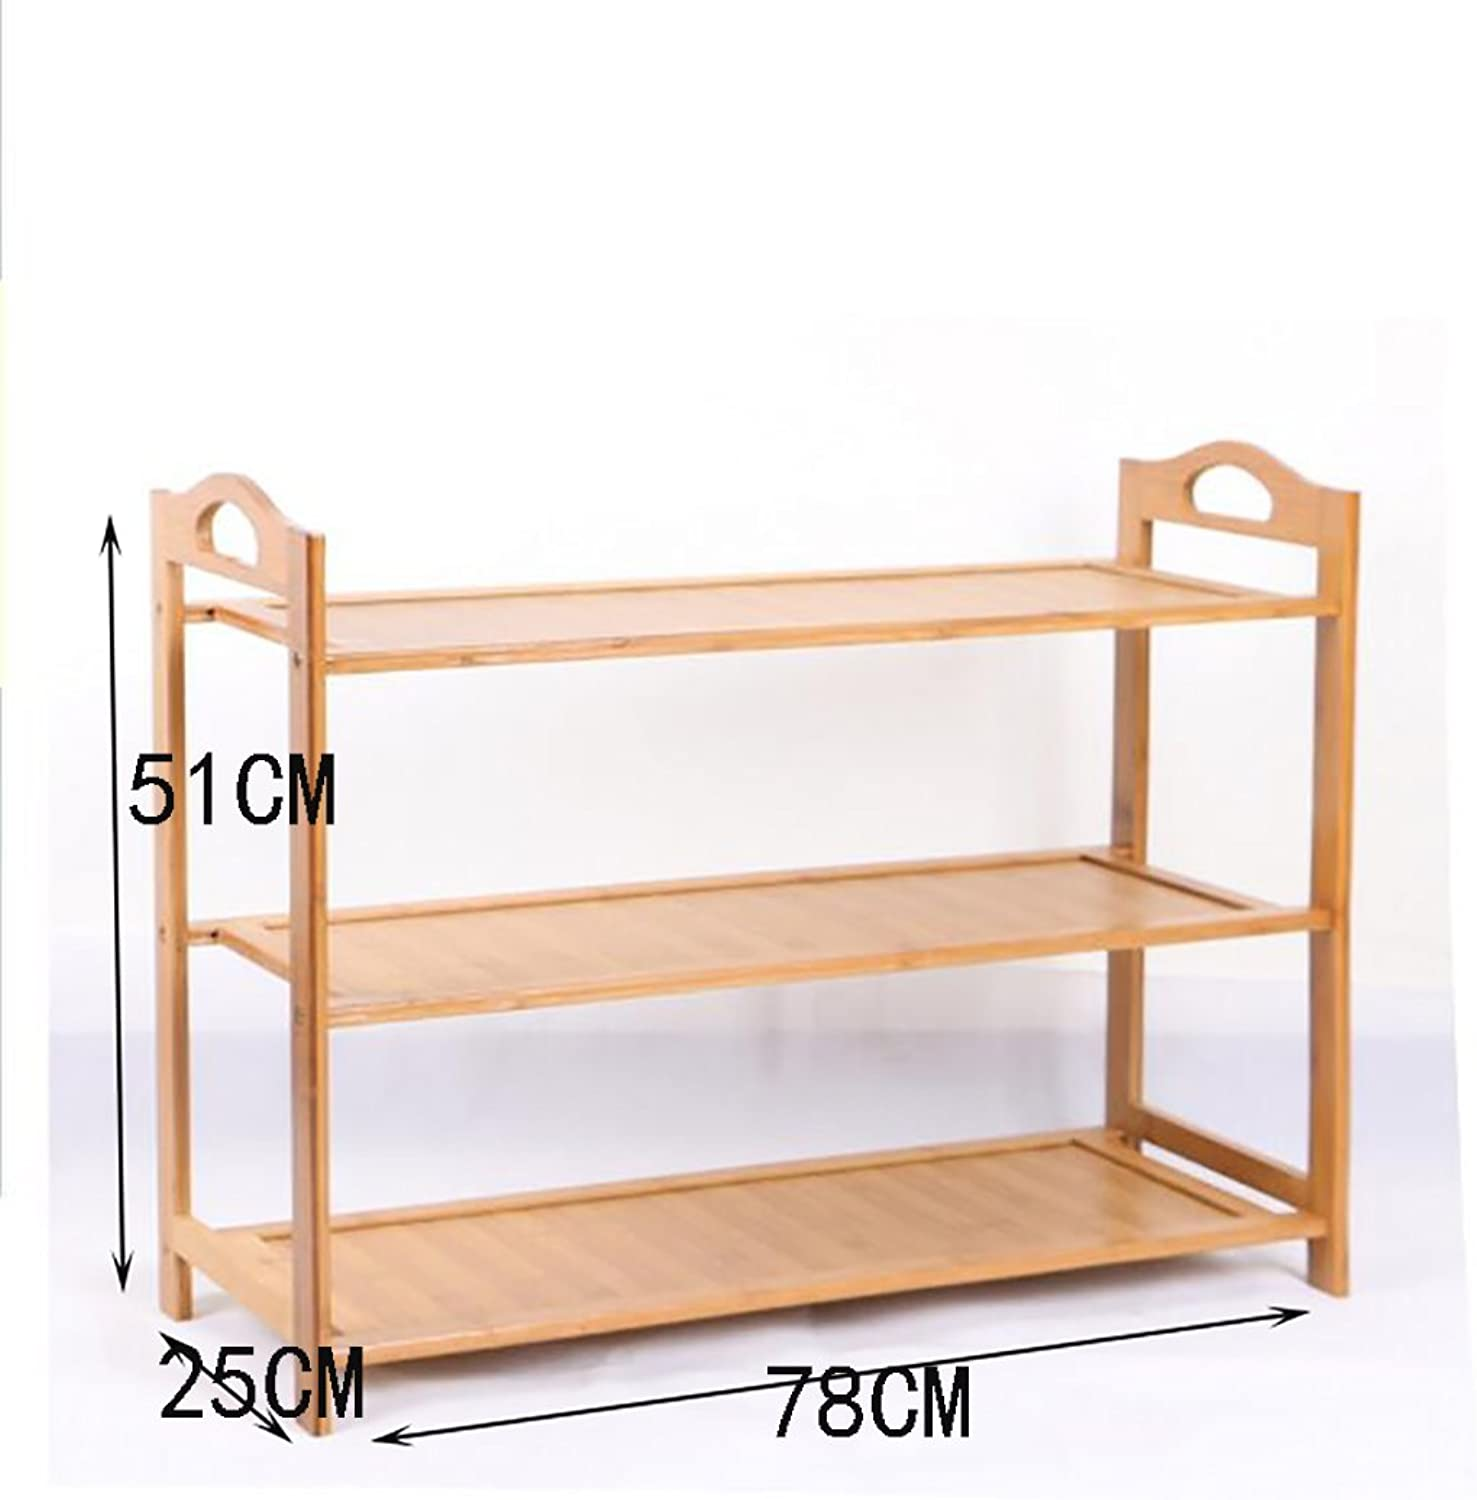 shoes Bench Organizing Rack Bamboo Simple shoes Rack Multi - Storey shoes Rack Wooden shoes Rack Multi - Storey Dormitory shoes Rack Living Room Shelves (color   2, Size   78CM)